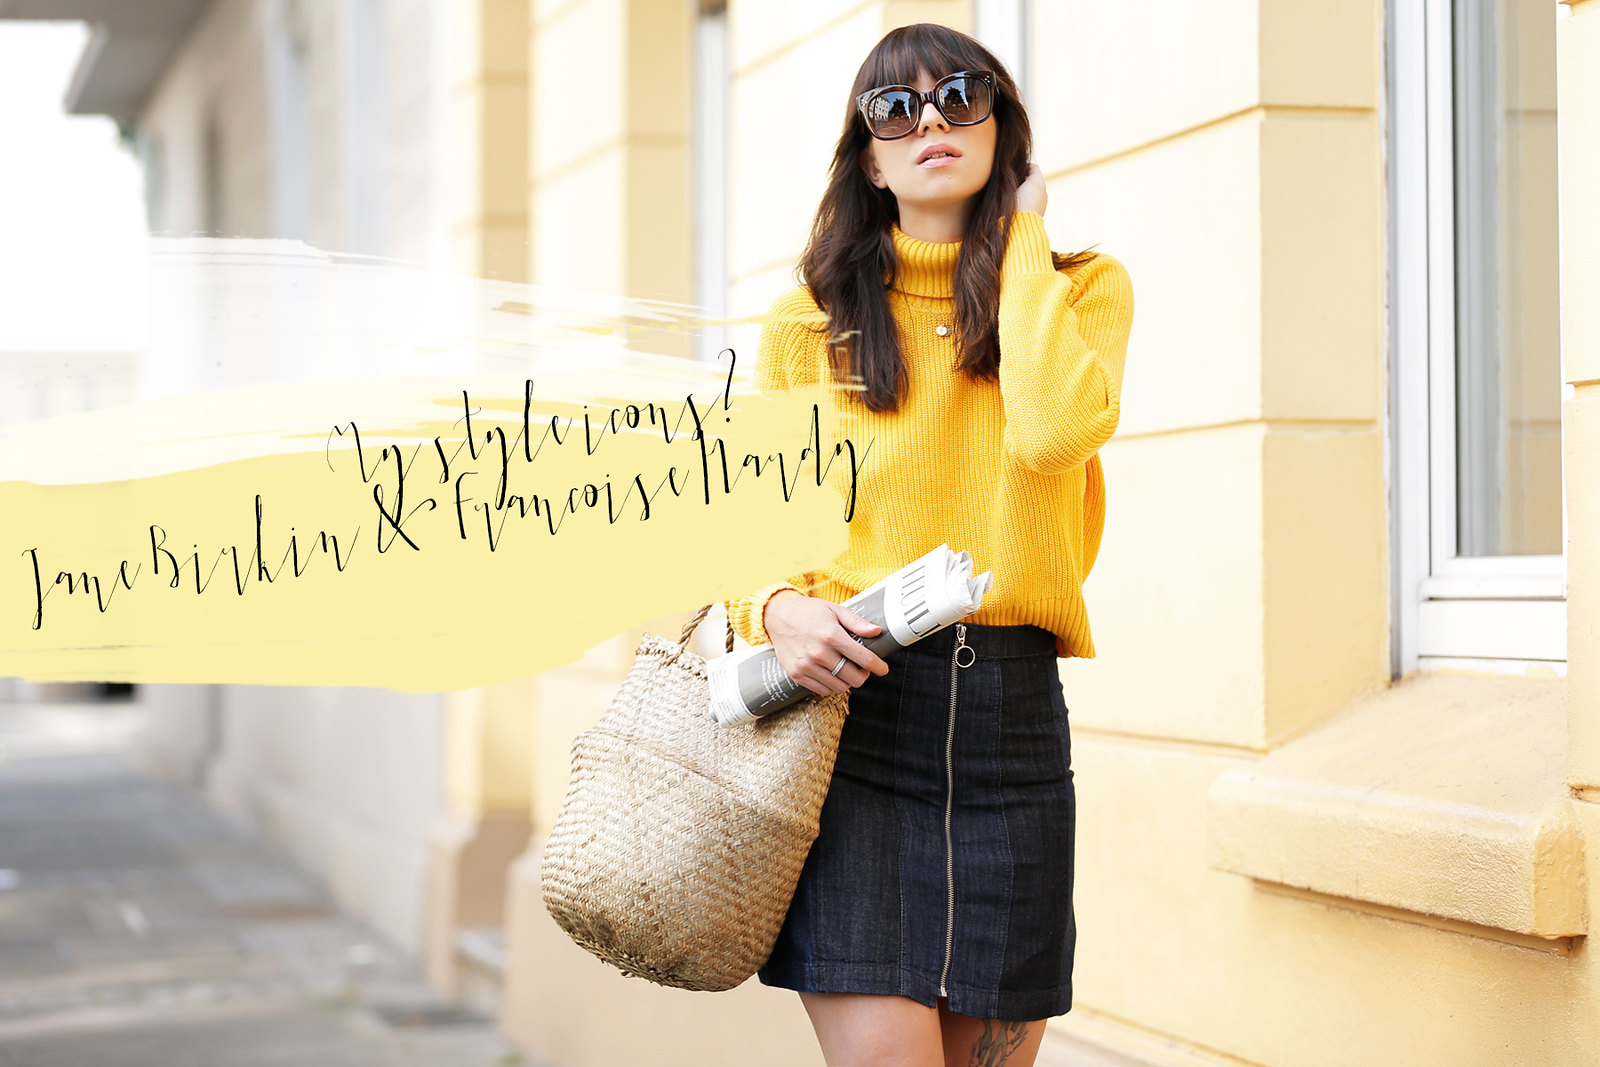 ootd outfit yellow knit turtleneck mini skirt basket jane birkin francoise hardy inspired french icons parisienne style bangs brunette céline audrey sunglasses cats & dogs fashion blog ricarda schernus modeblog fashionblogger germany berlin 4